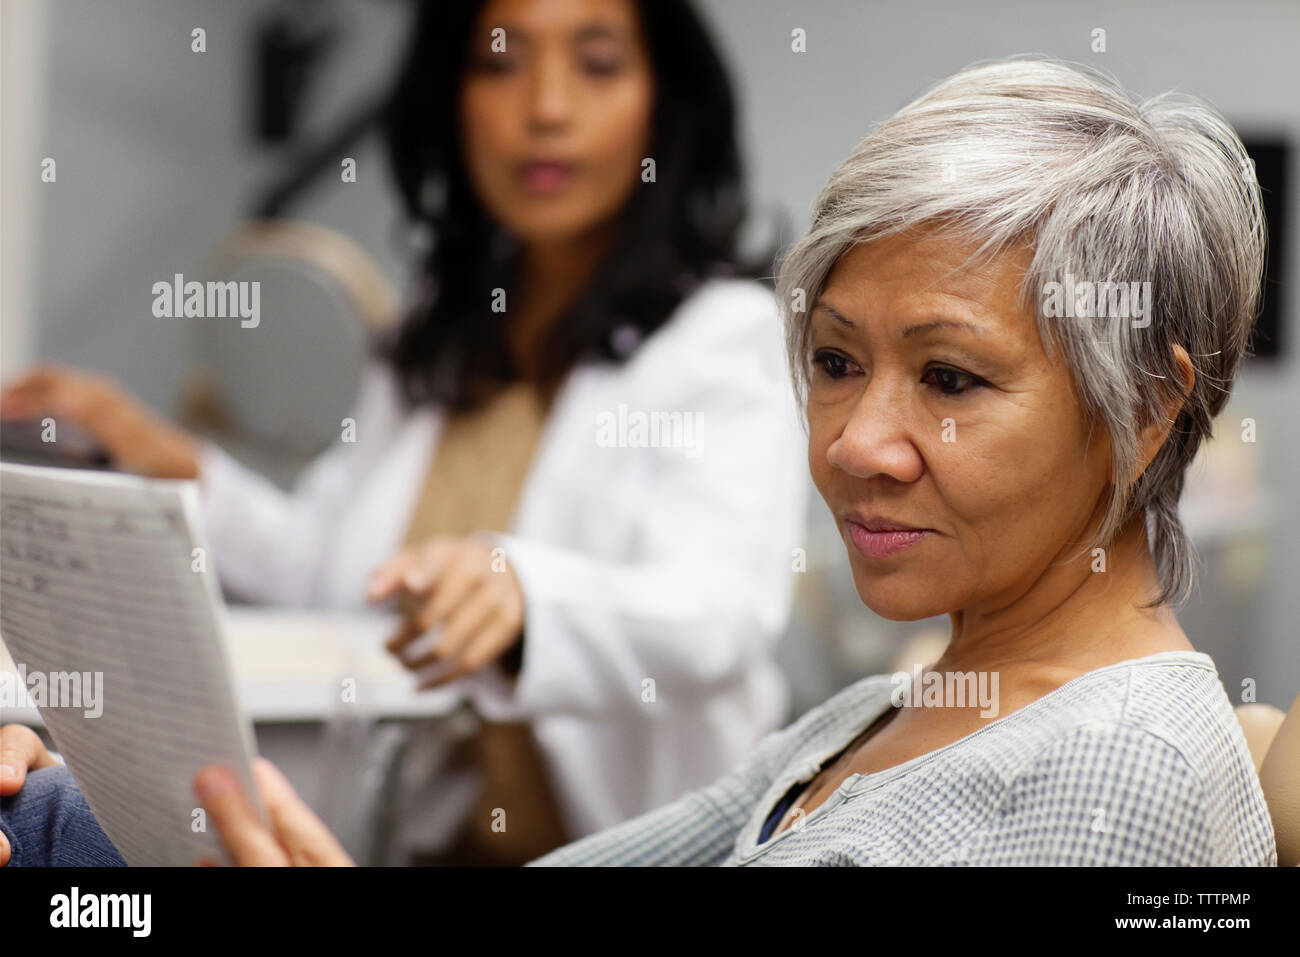 Doctor reading medical report Stock Photo